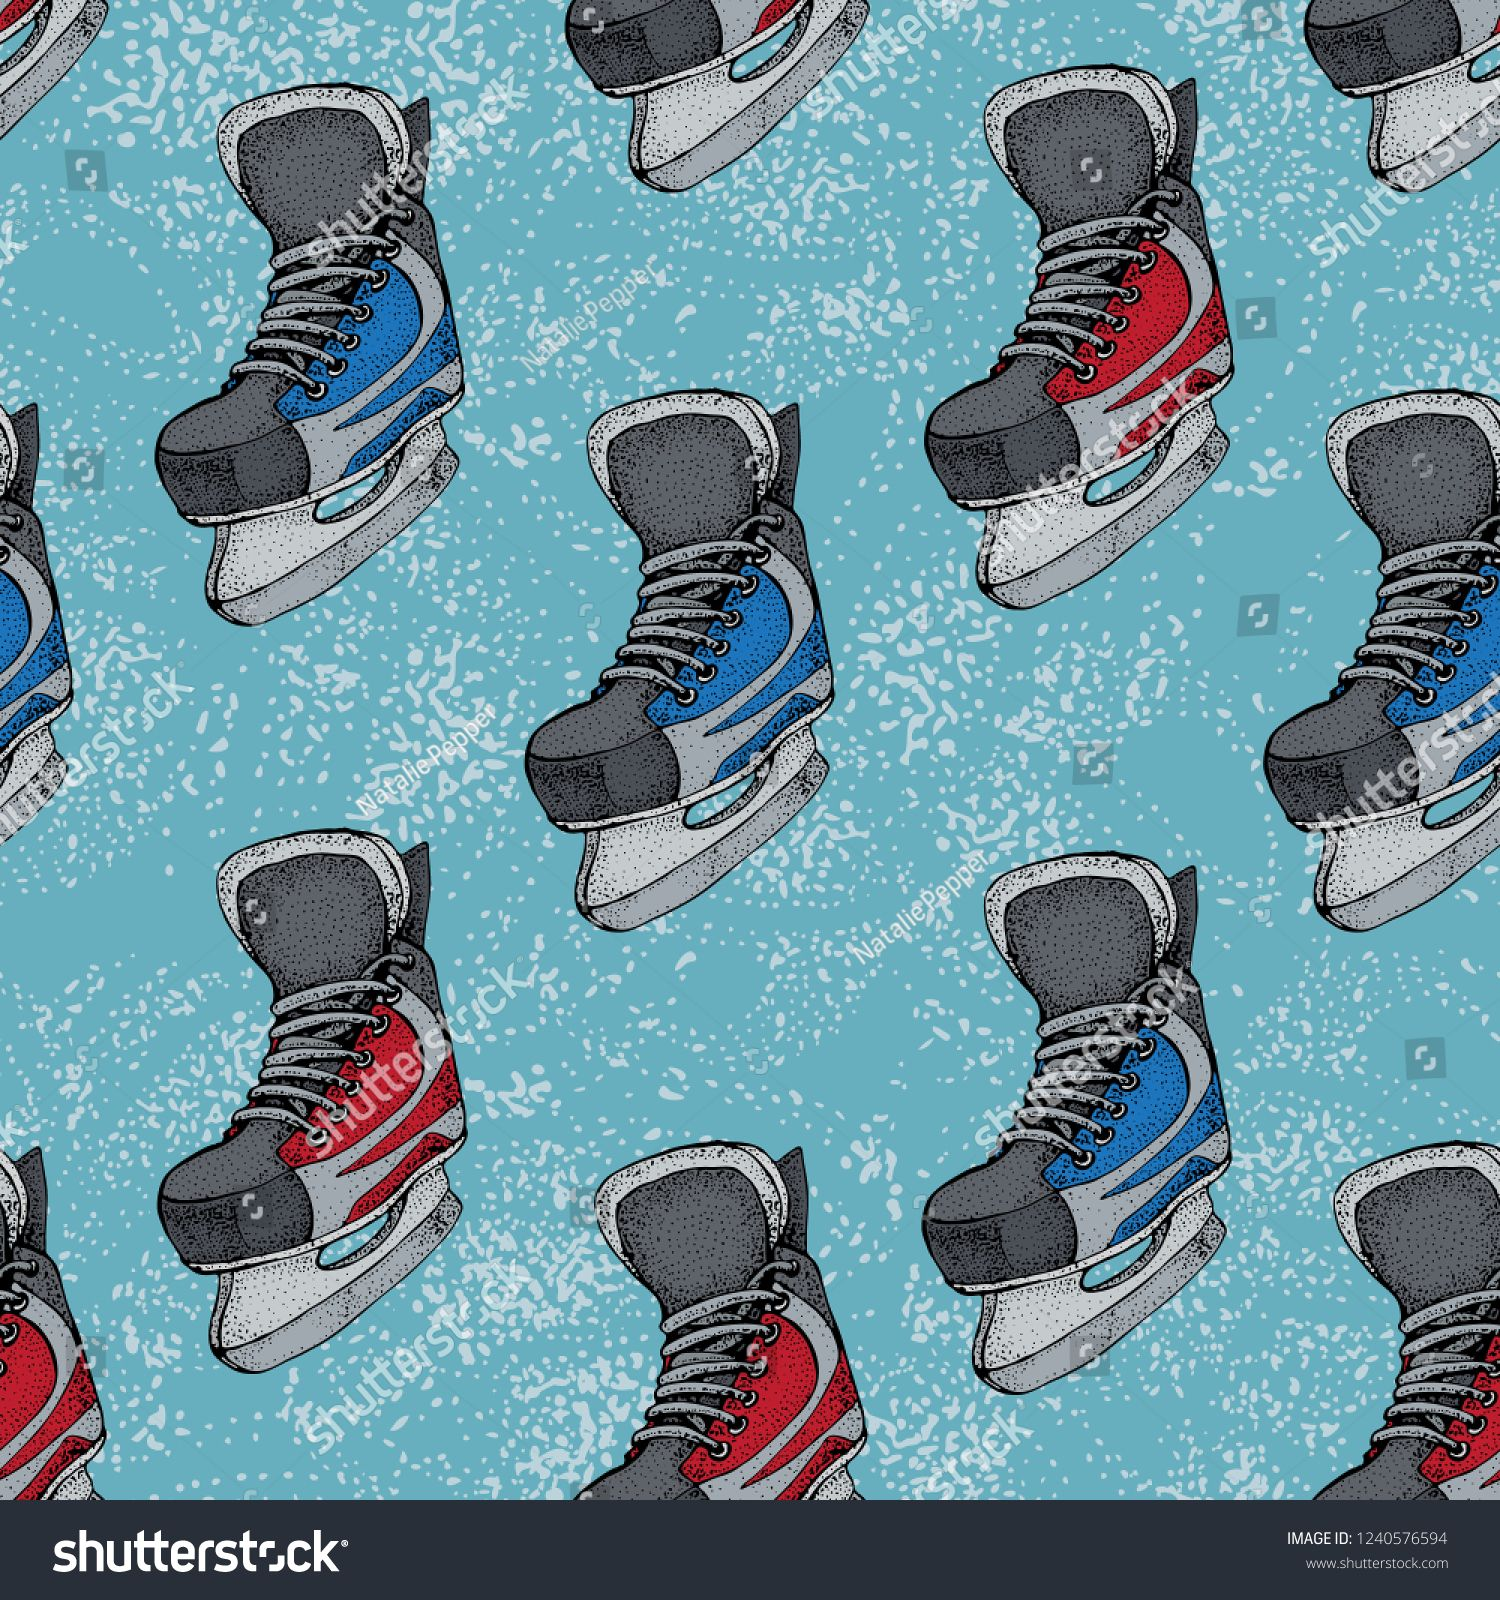 Winter Holidays Seamless Pattern With Ice Skates Cartoon Sketch Red And Blue Ice Hockey Skates Vector Ill Cartoon Sketches Blue Backgrounds Seamless Patterns